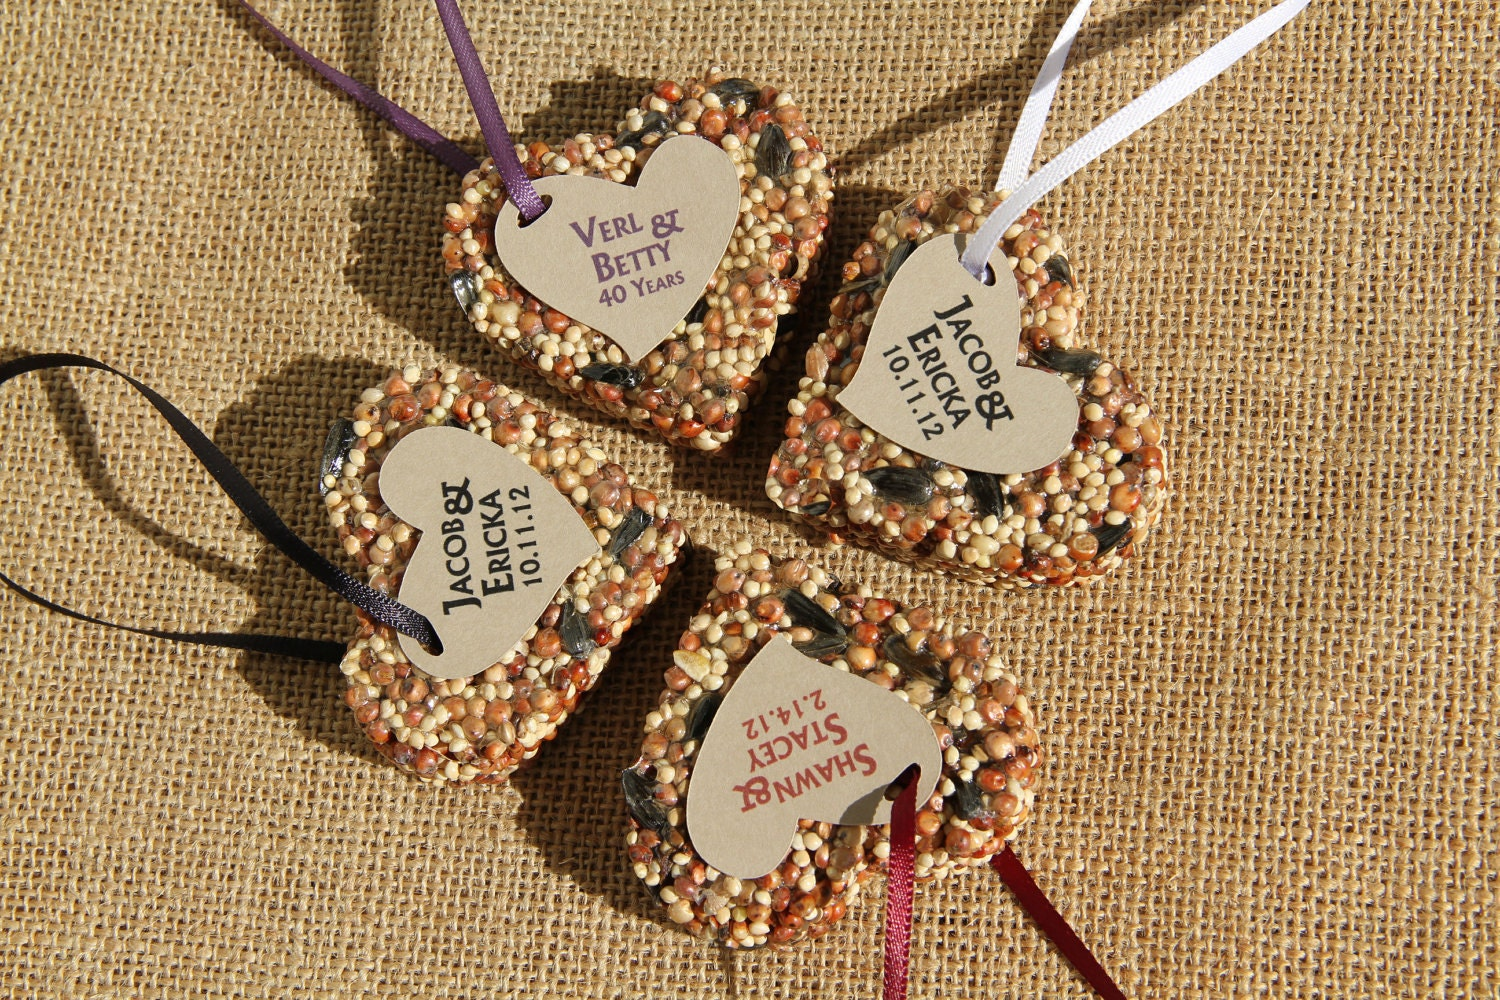 150 Bird Seed favors - hearts, personalized, eco friendly, birdseed wedding favor, love birds